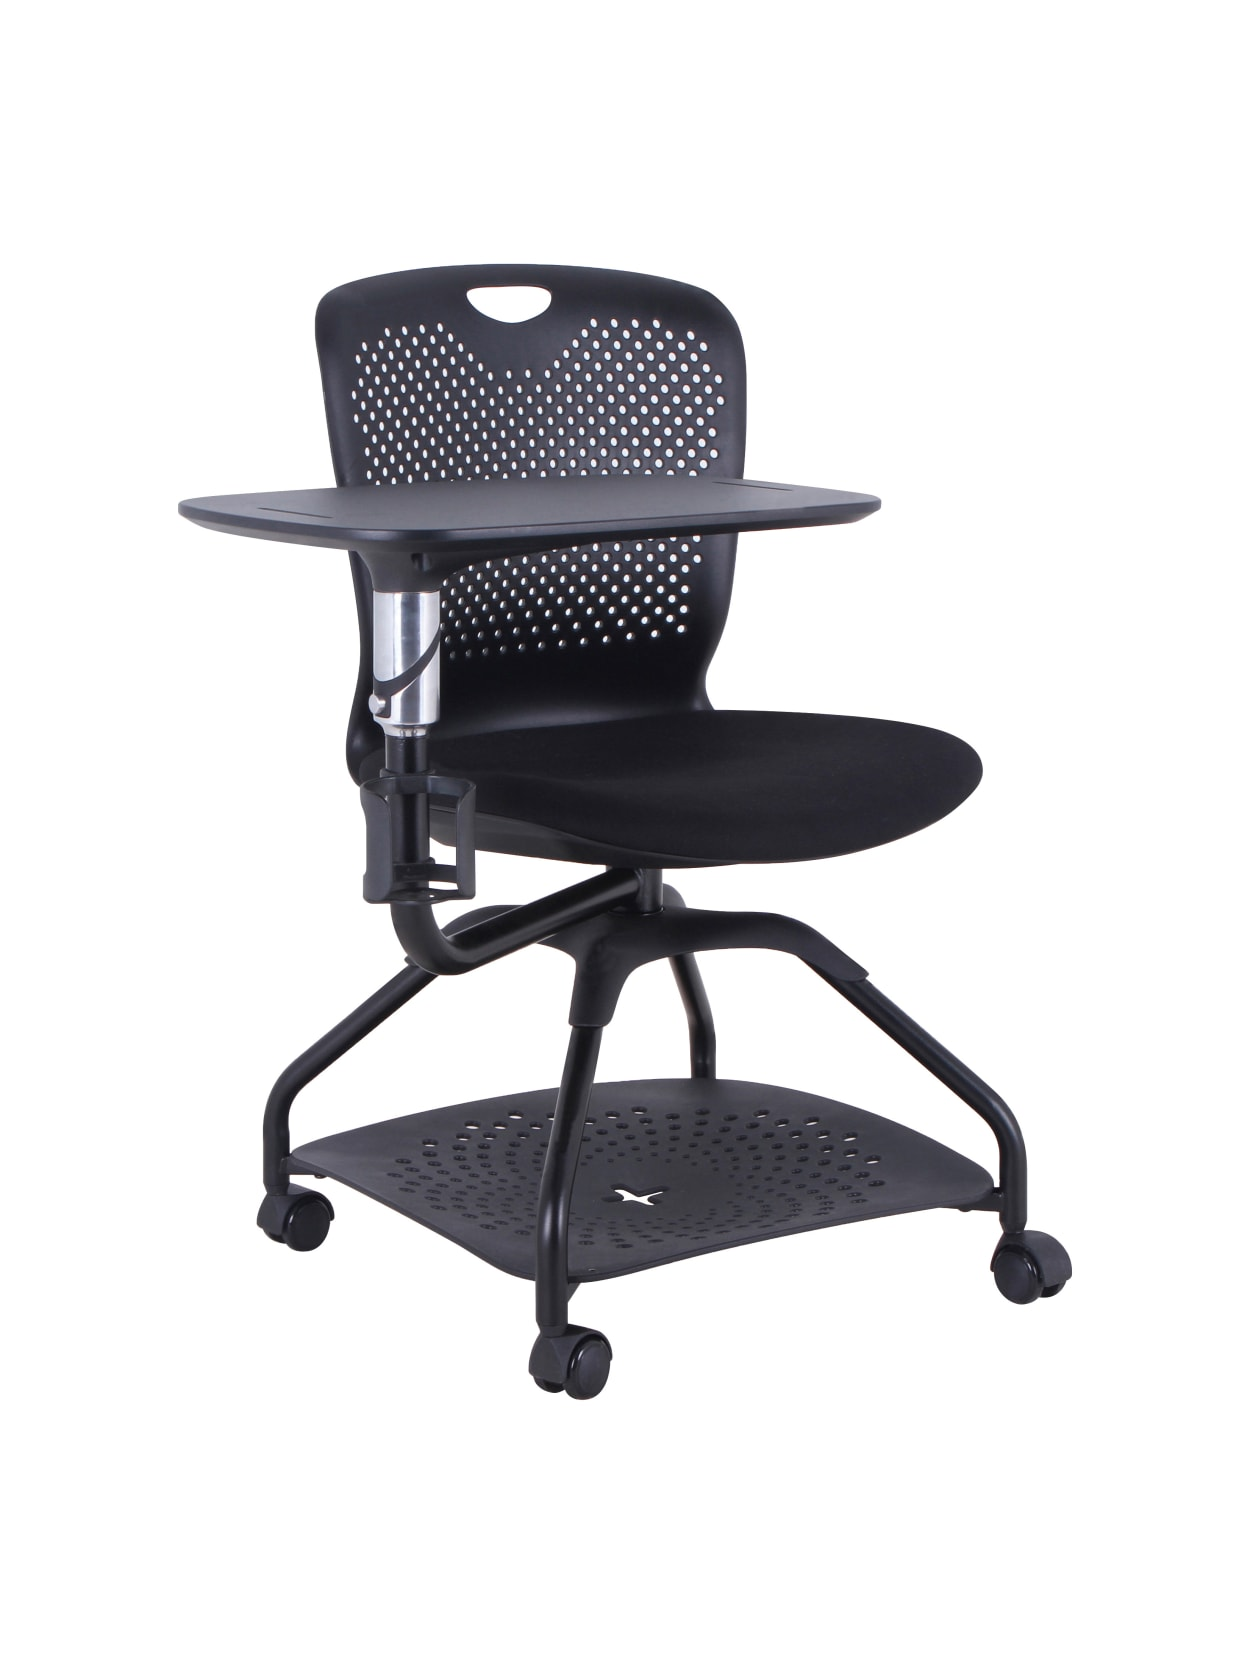 Lorell Mobile Student Training Chair Black - Office Depot